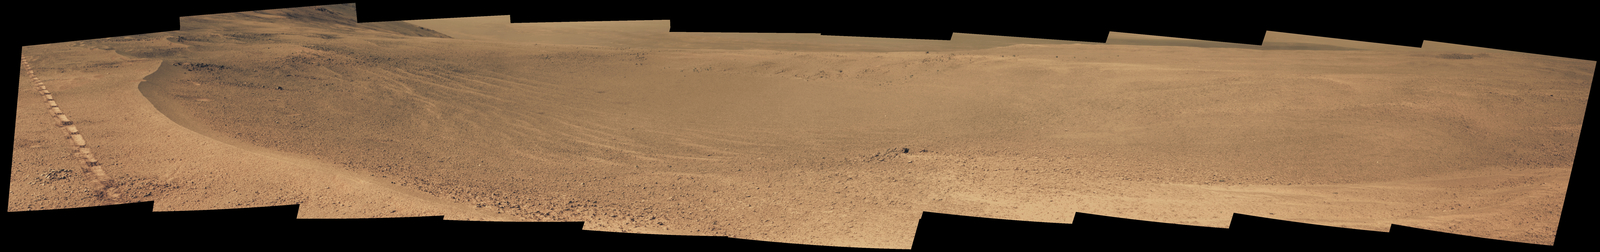 "NASA's Opportunity Mars rover passed near this small, relatively fresh crater in April 2017, during the 45th anniversary of the Apollo 16 mission to the moon. The rover team chose to call it ""Orion Crater,"" after the Apollo 16 lunar module. The rover's Panoramic Camera (Pancam) recorded this view."